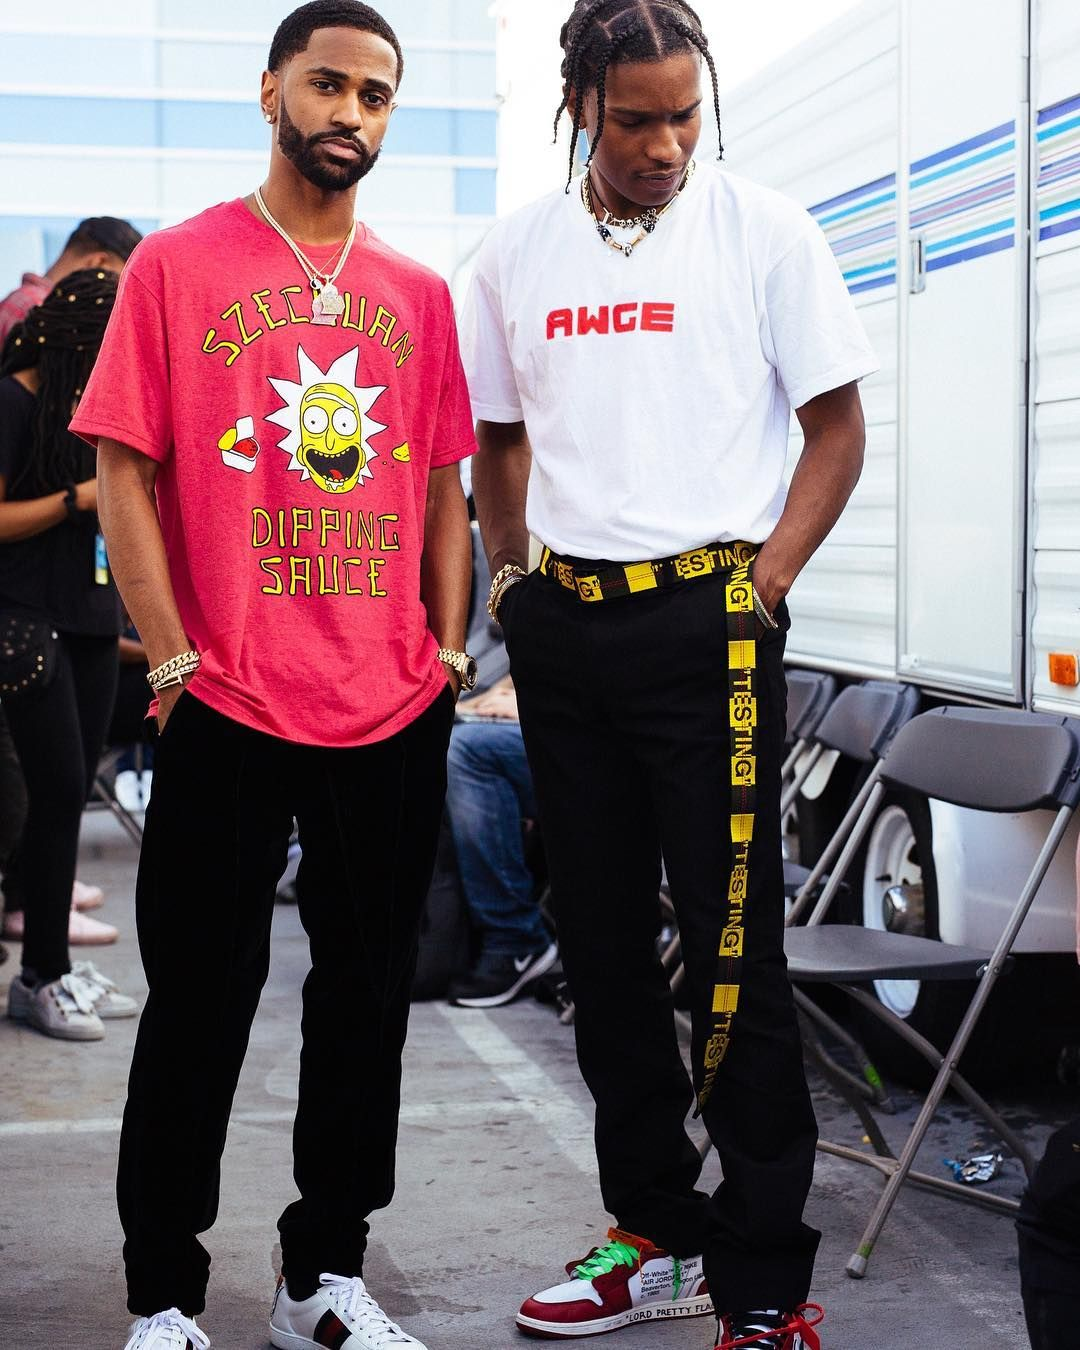 f49fc94fcf3ff2 Big Sean in SzeChuan Sauce Rick Shirt x Gucci Sneakers